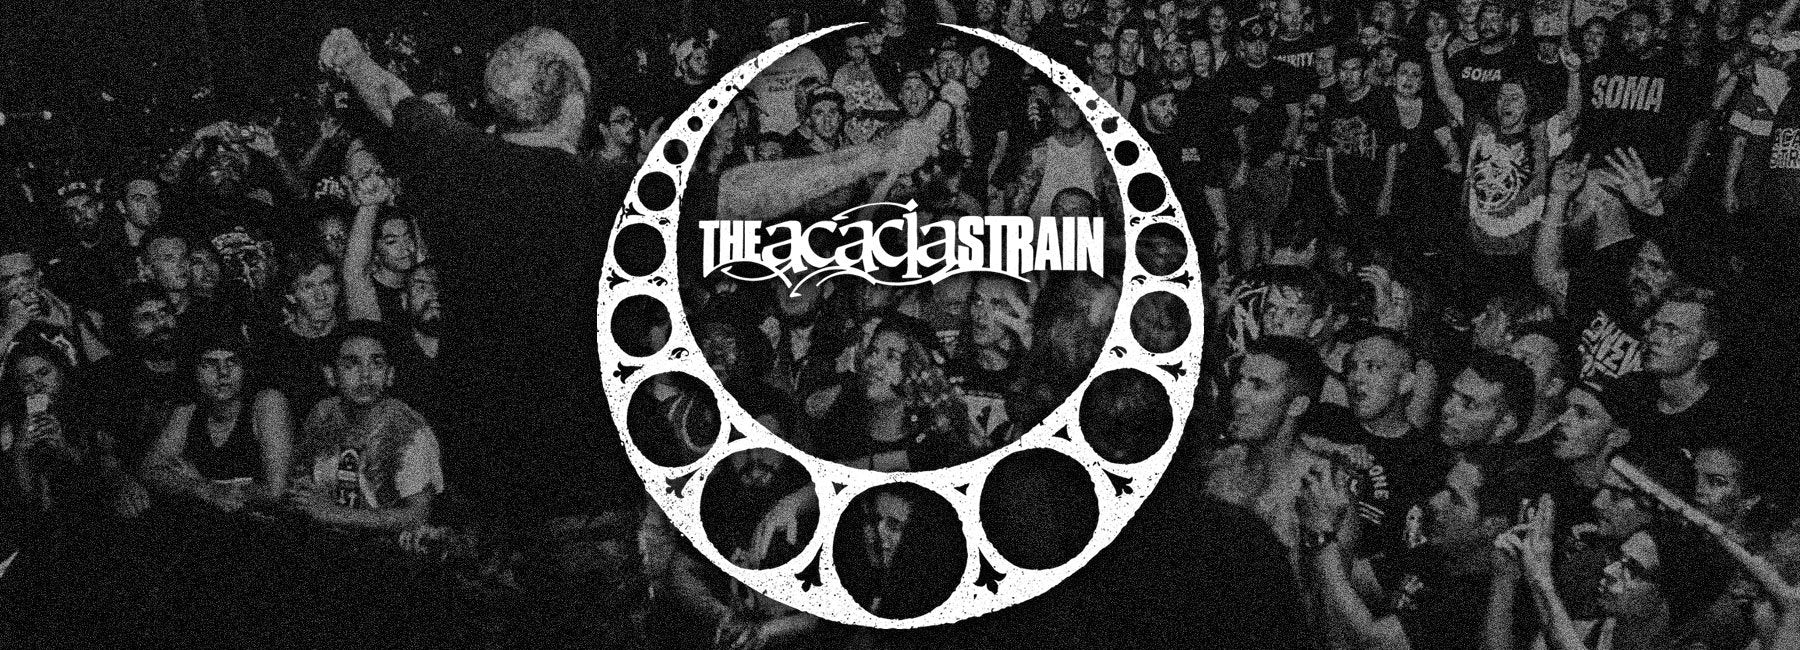 Official The Acacia Strain band merch only available on allinmerch.com